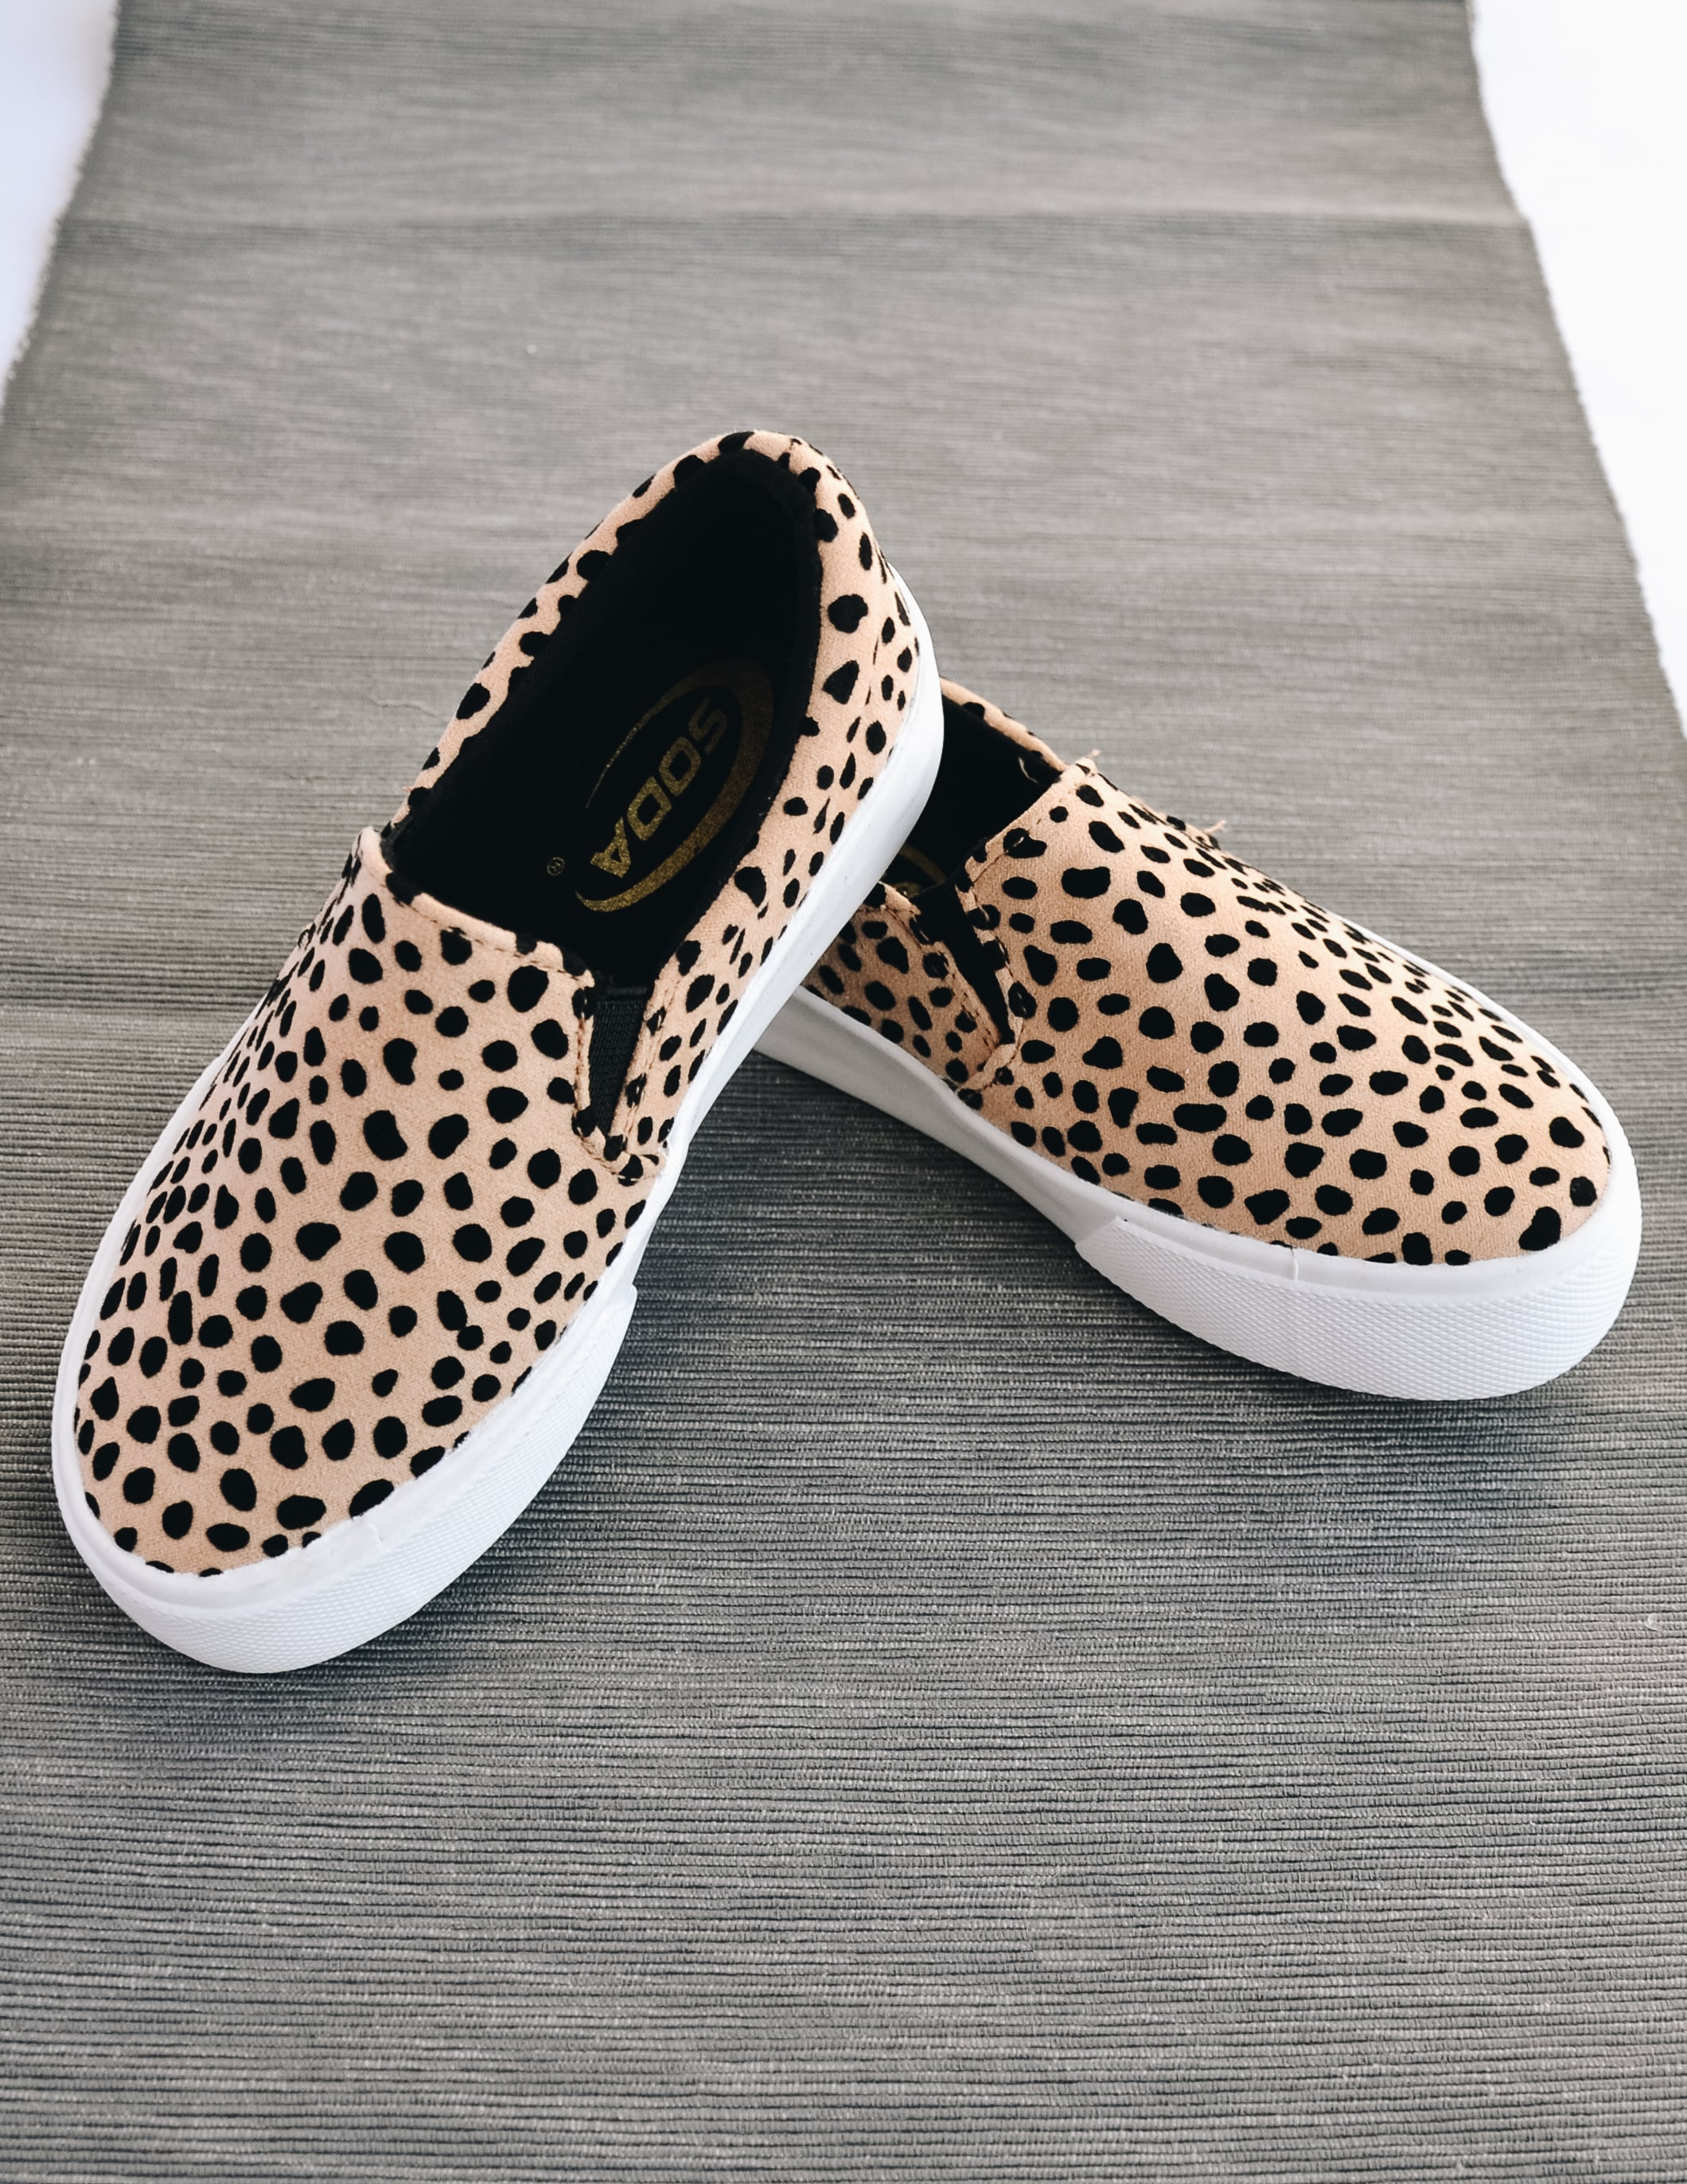 cheetah stand tall platform sneaker on grey background - elle bleu shoes